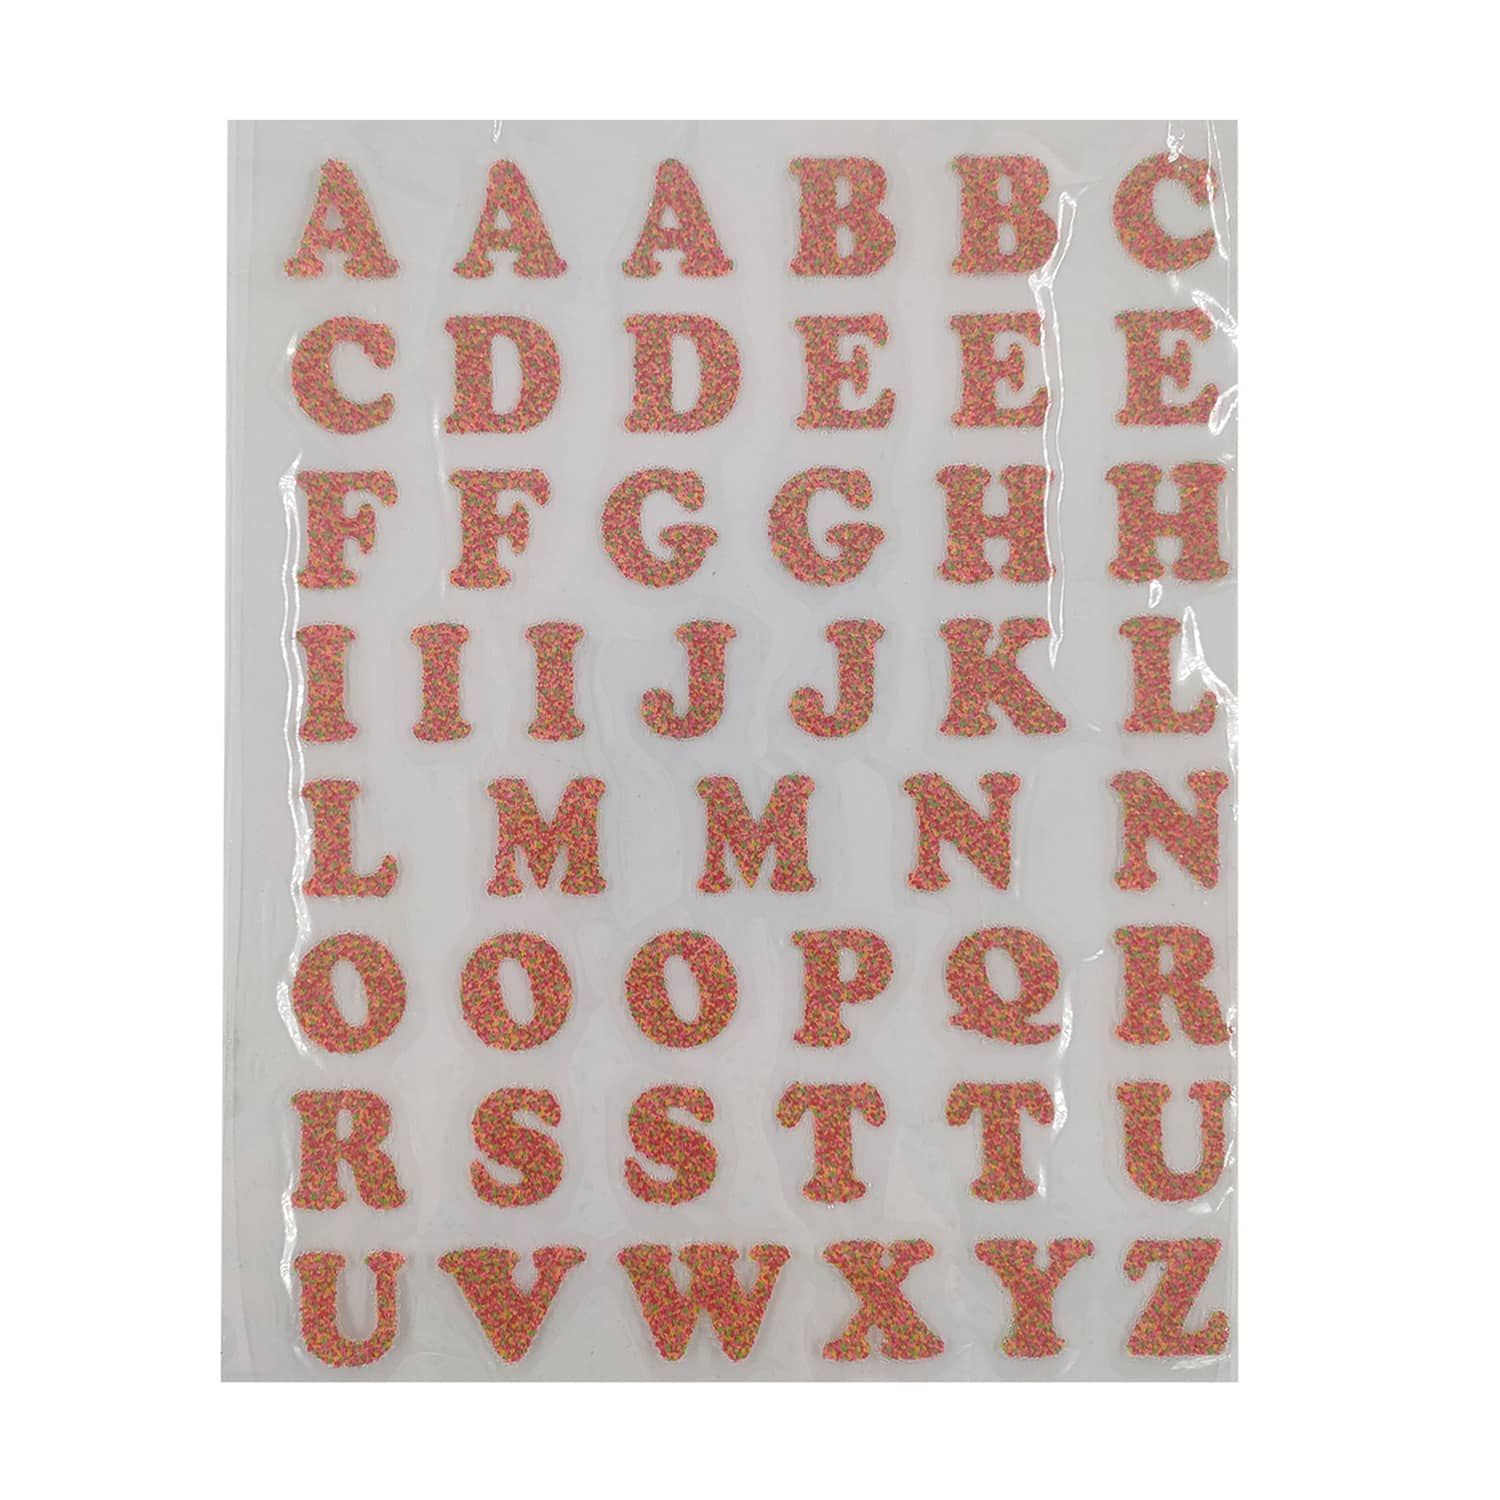 1 Iron On Sprinkle Letters By Imagin8 Michaels